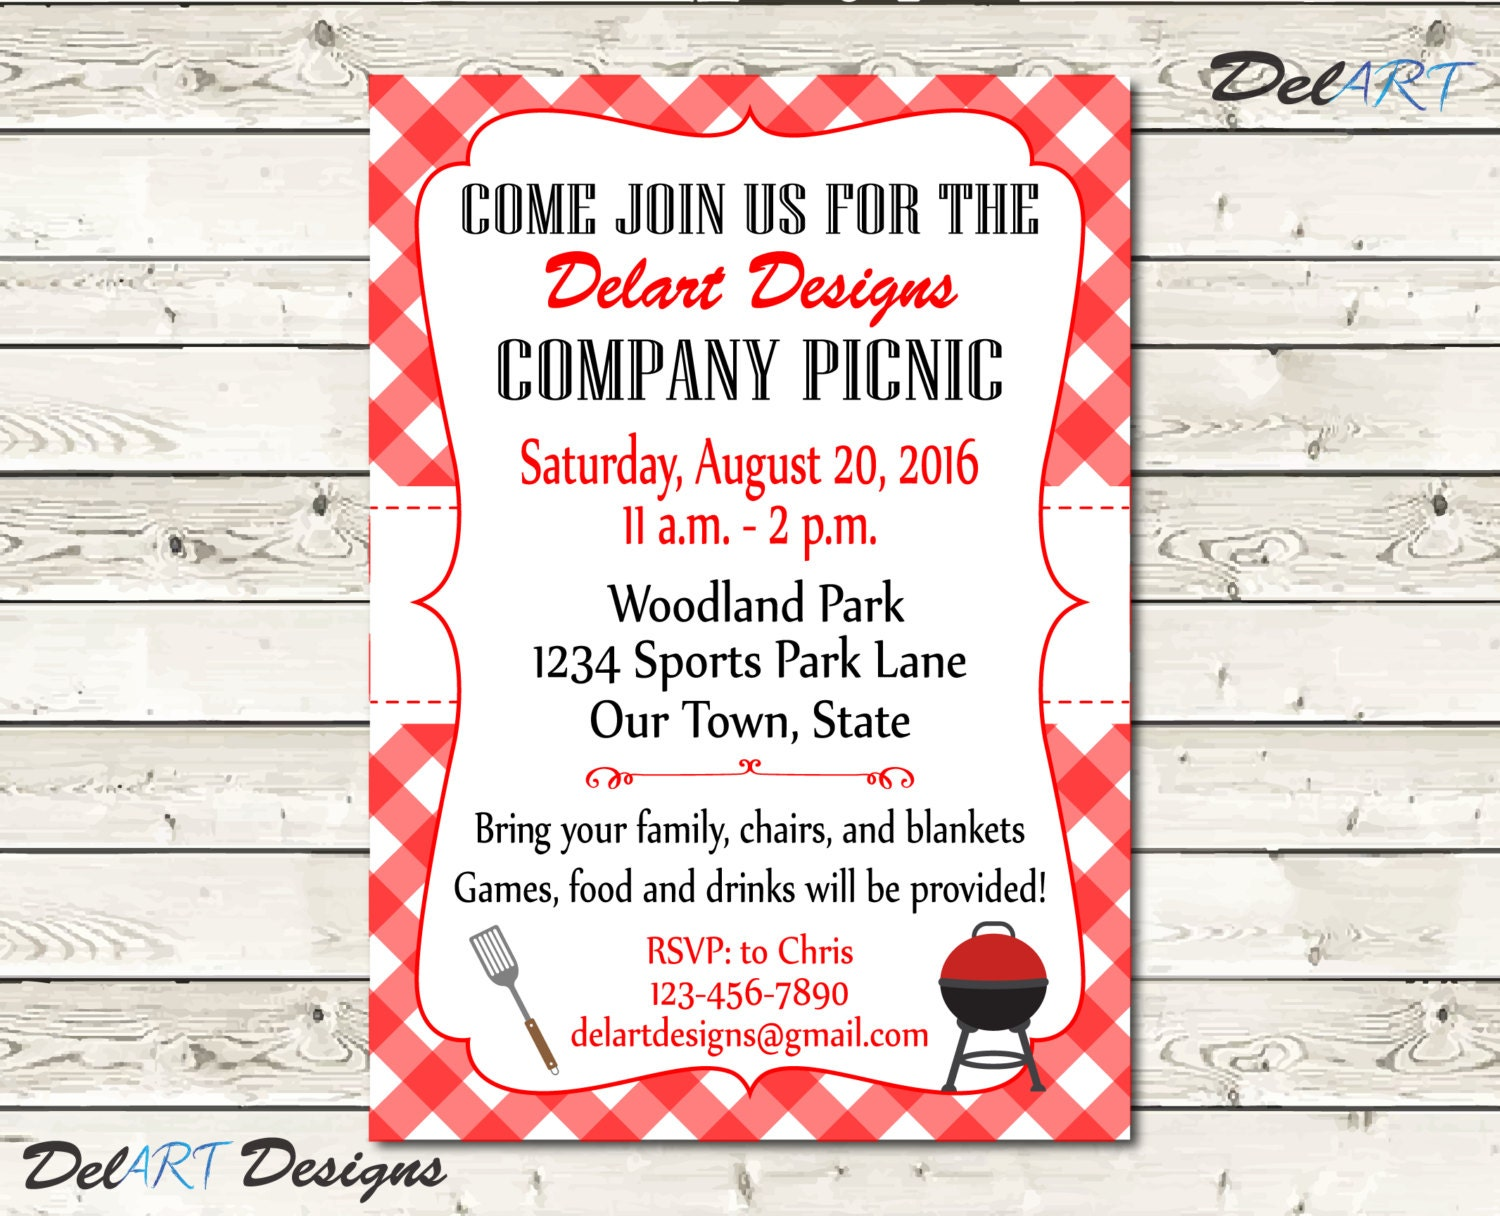 corporate invitation custom picnic invitations company bbq invite church or business party printable digital file after customization jpg or pdf